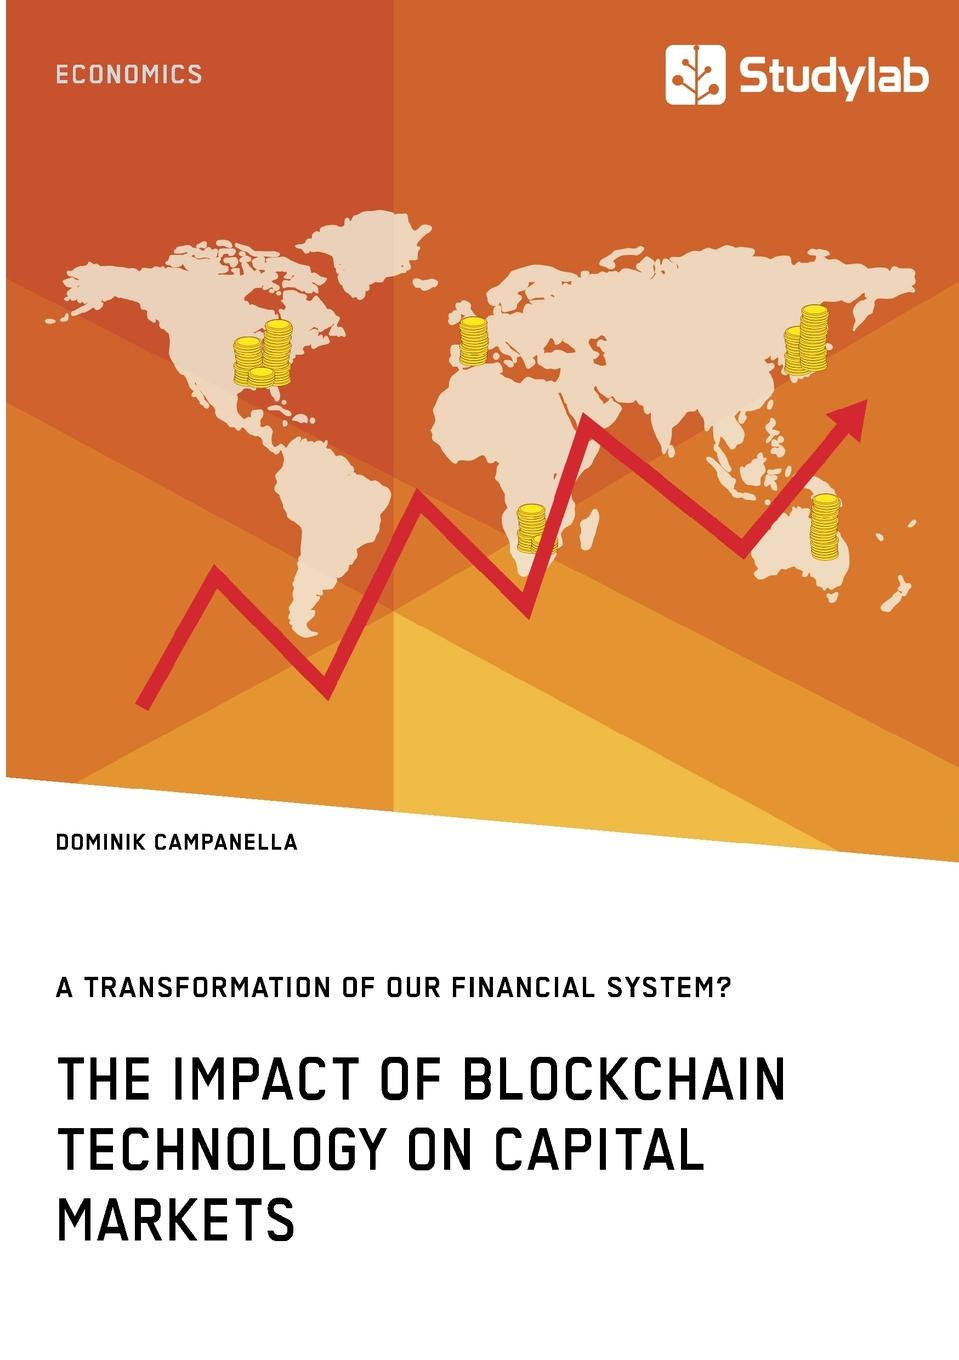 лучшая цена Dominik Campanella The Impact of Blockchain Technology on Capital Markets. A Transformation of our Financial System.